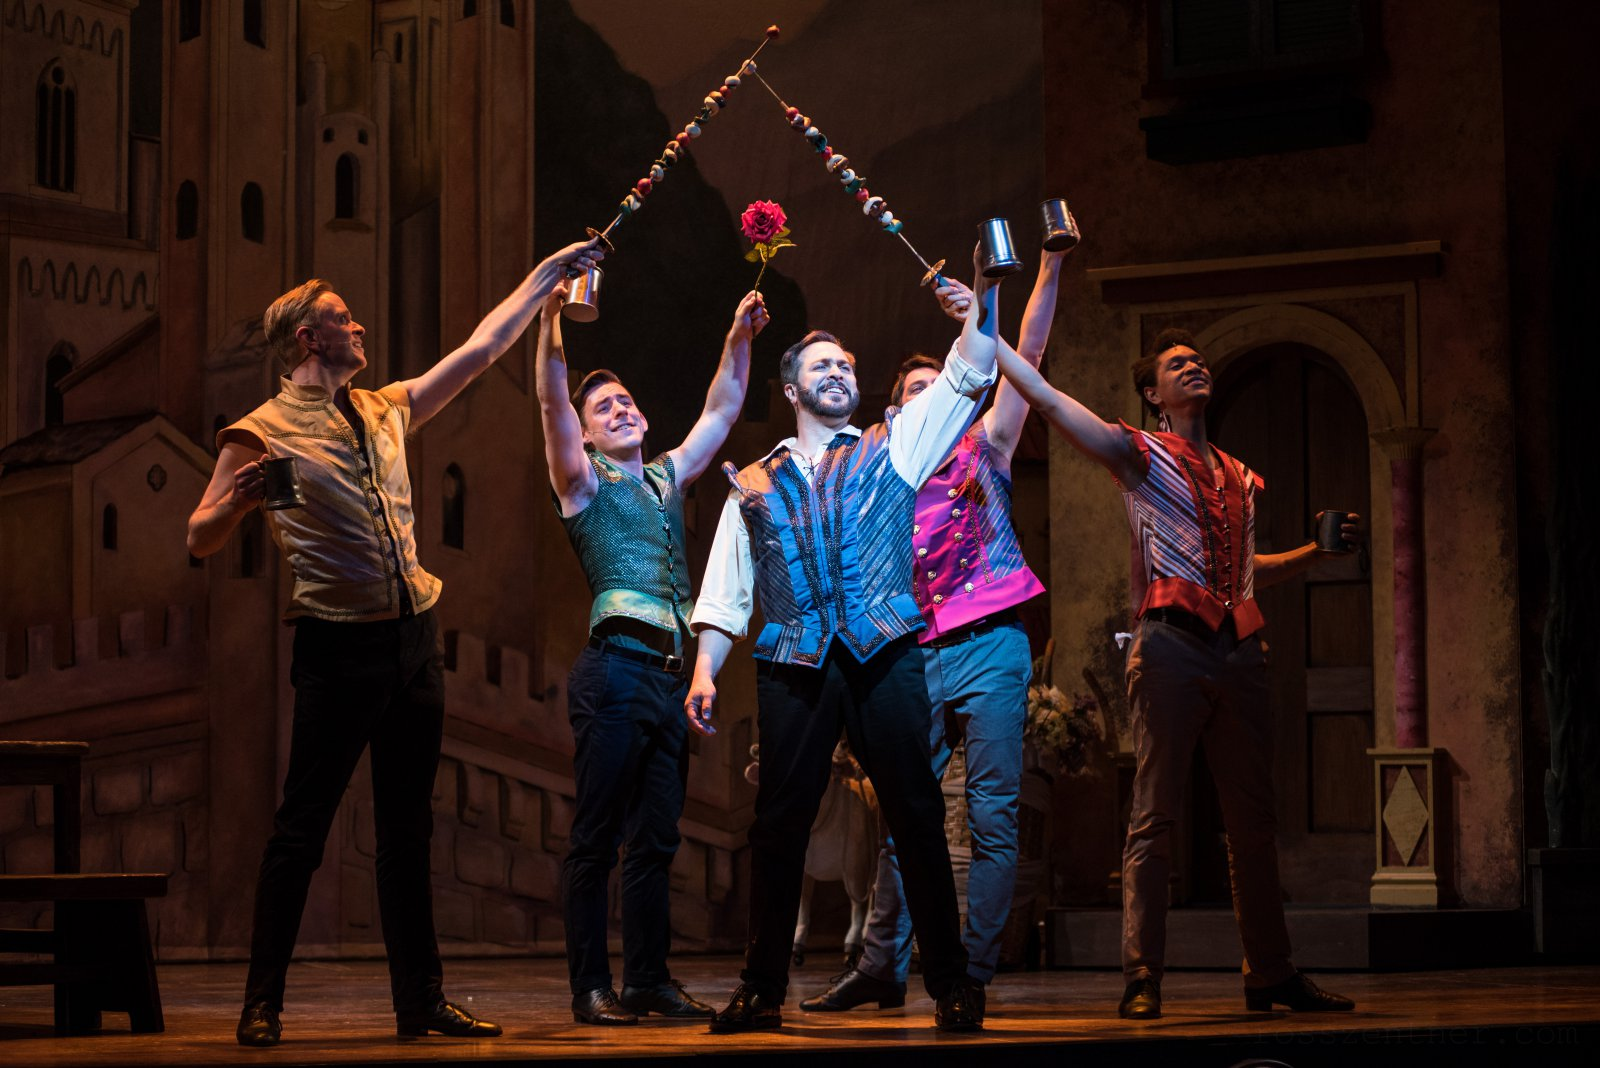 (l. to r.) Ryan Cappleman (Dance Captain/Ensemble), Joe Capstick (Bill Calhoun/Lucentio), Andrew Varela (Fred Graham/Petruchio) Tim Rebers (Gremio/Flynt) and Sean Anthony Jackson (Paul/Hortensio) in rehearsal for Skylight Music Theatre's production of Kiss Me, Kate May 17 – June 16.